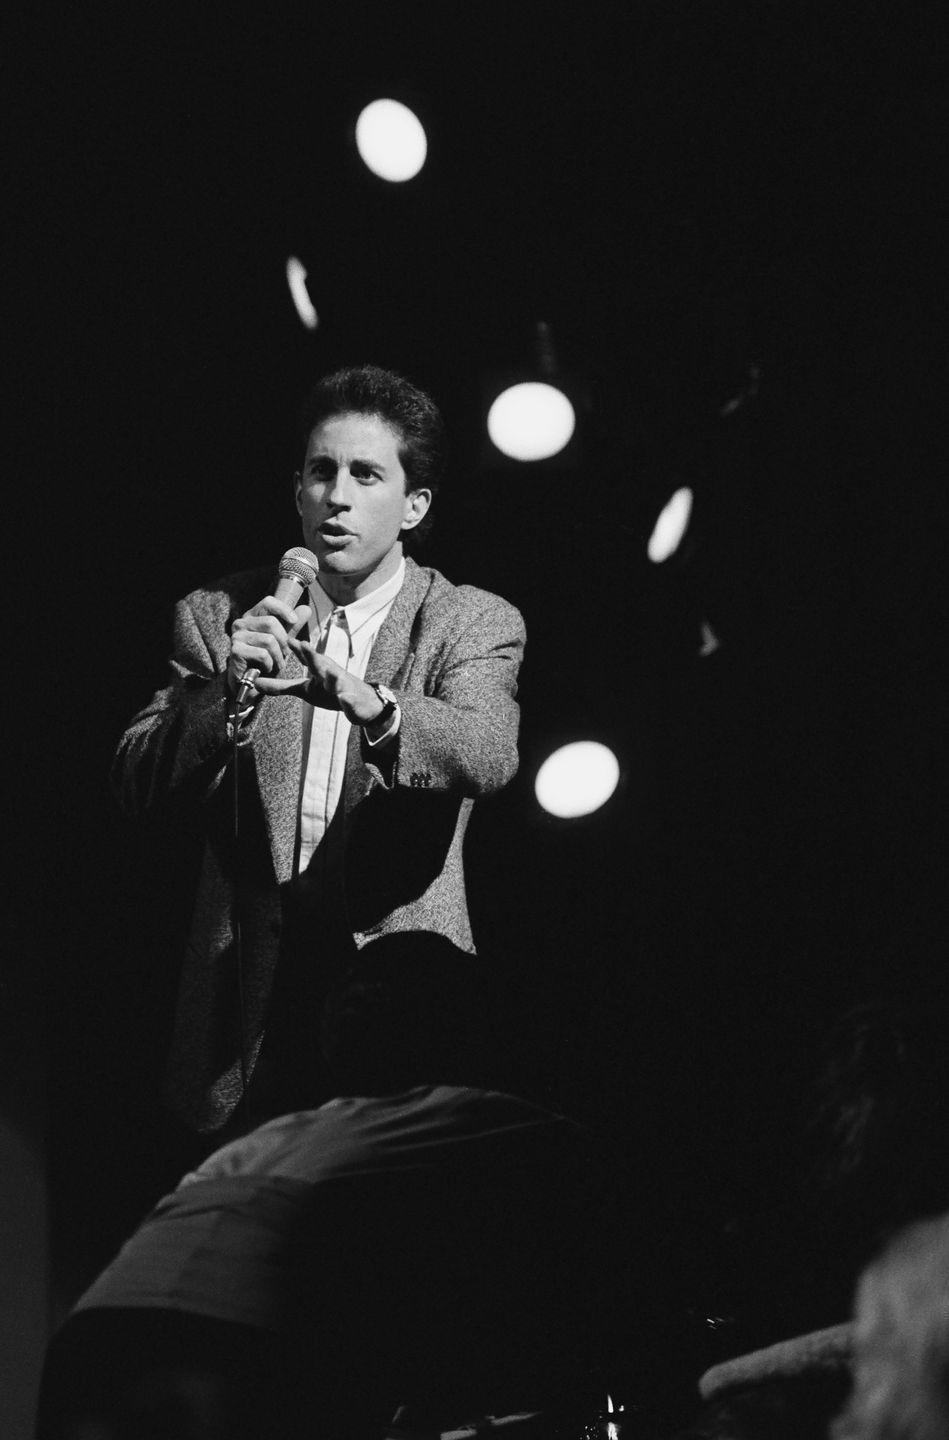 <p>Jerry Seinfeld began his career in comedy clubs and first debuted his stand-up act in 1976. He grew in prominence in the early '80s thanks to gigs on <em>The Tonight Show.</em></p>